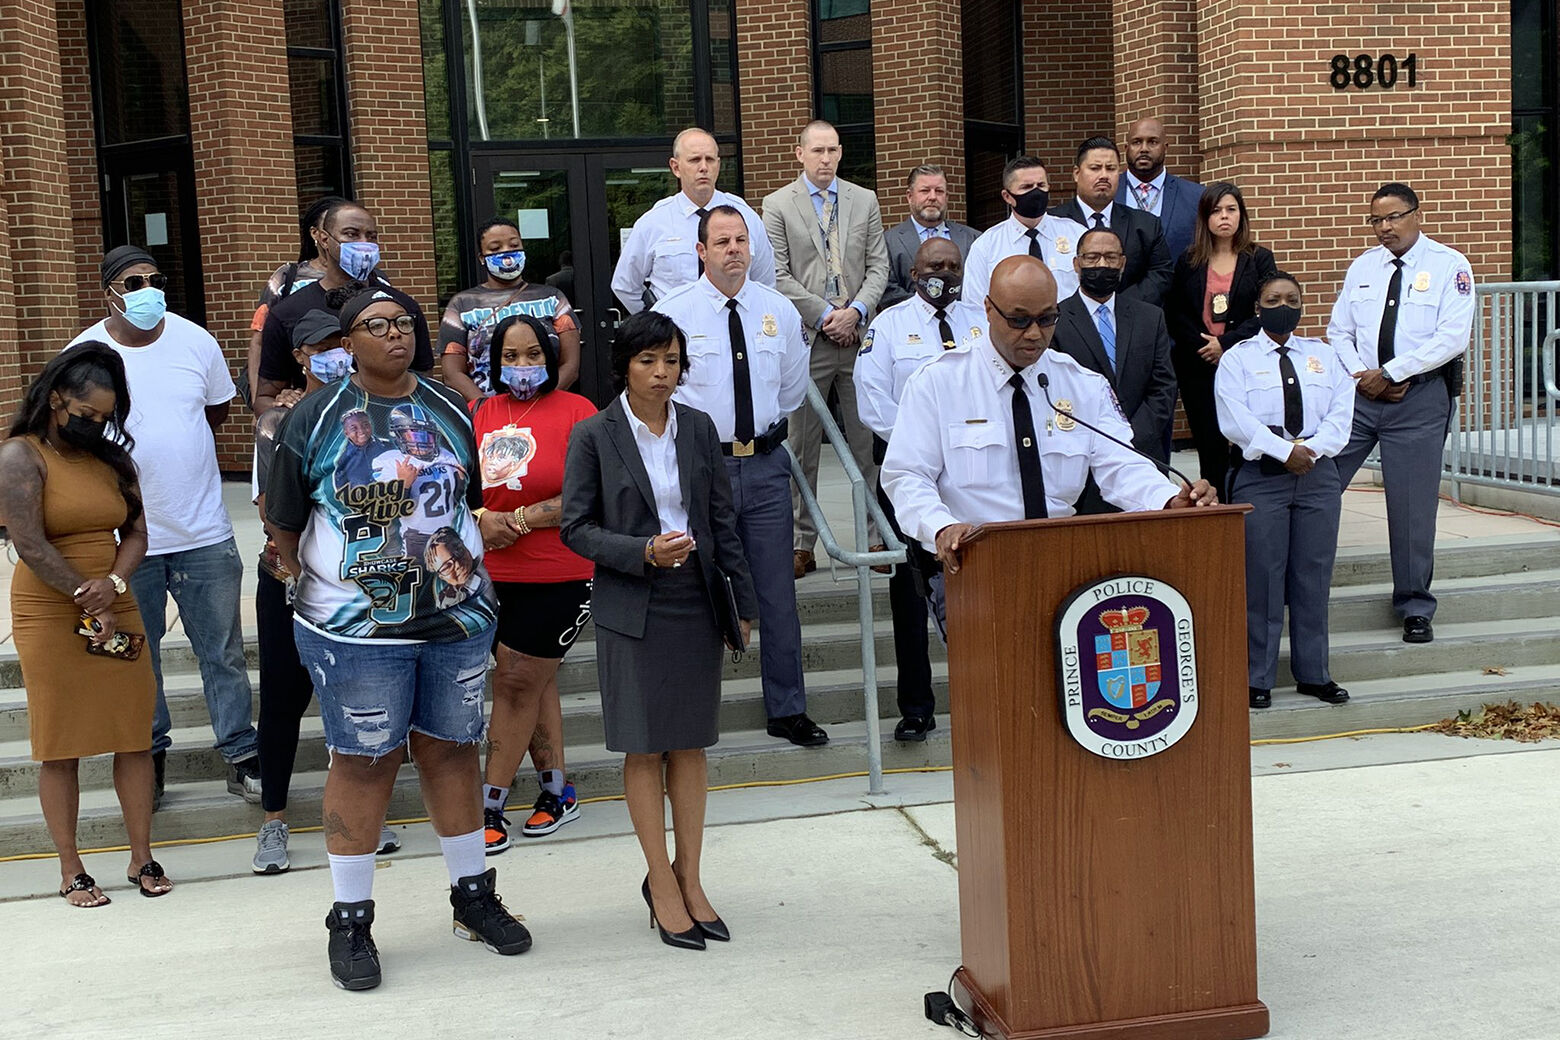 Mother of slain 8-year-old gets 'a gift' — suspects' handcuffs